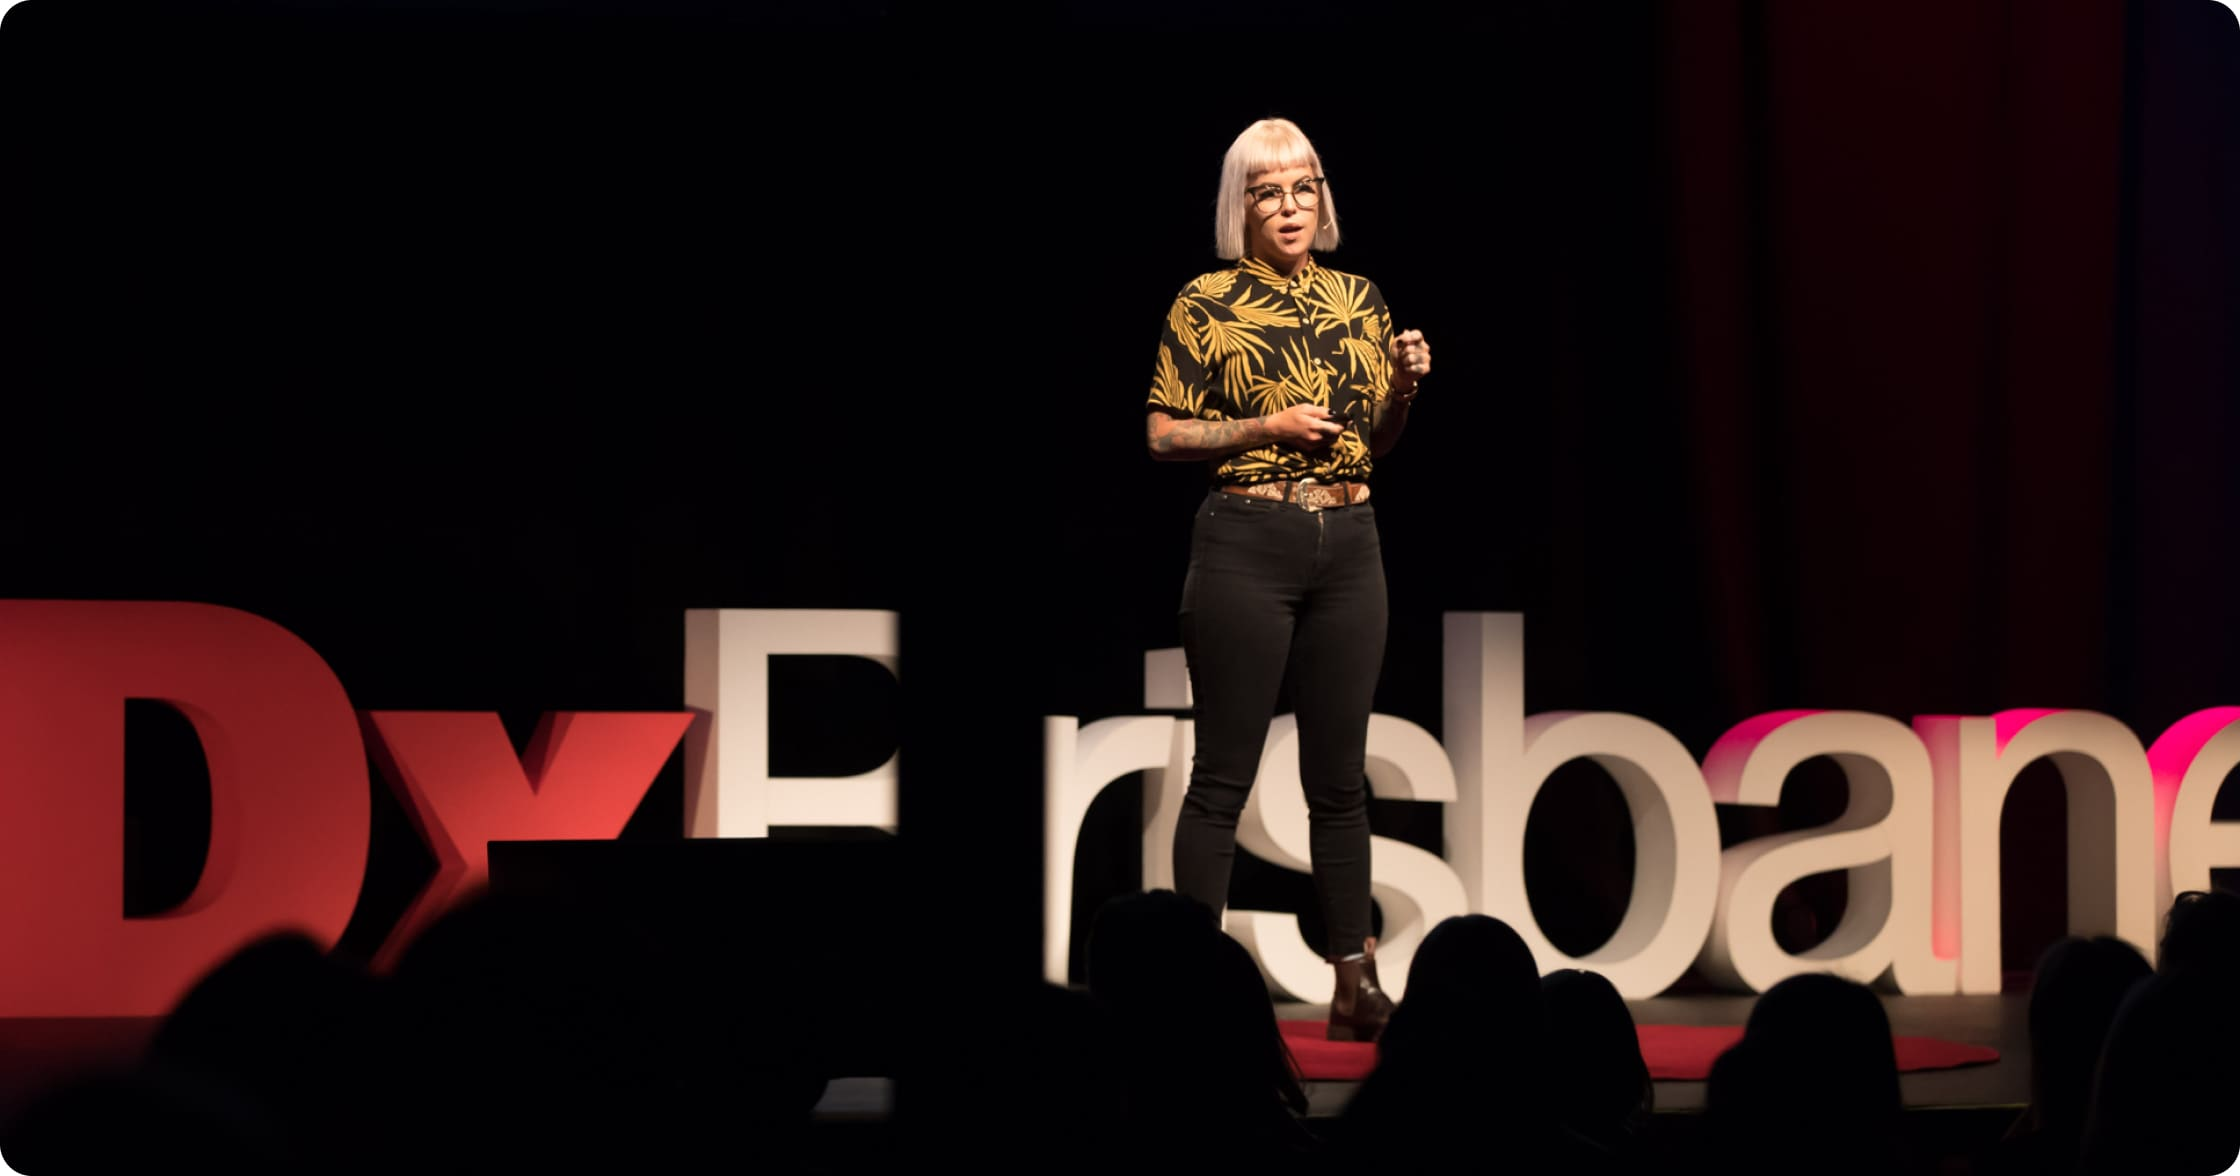 Tedx uses Attendify's event app to inspire and engage at their ideas festival